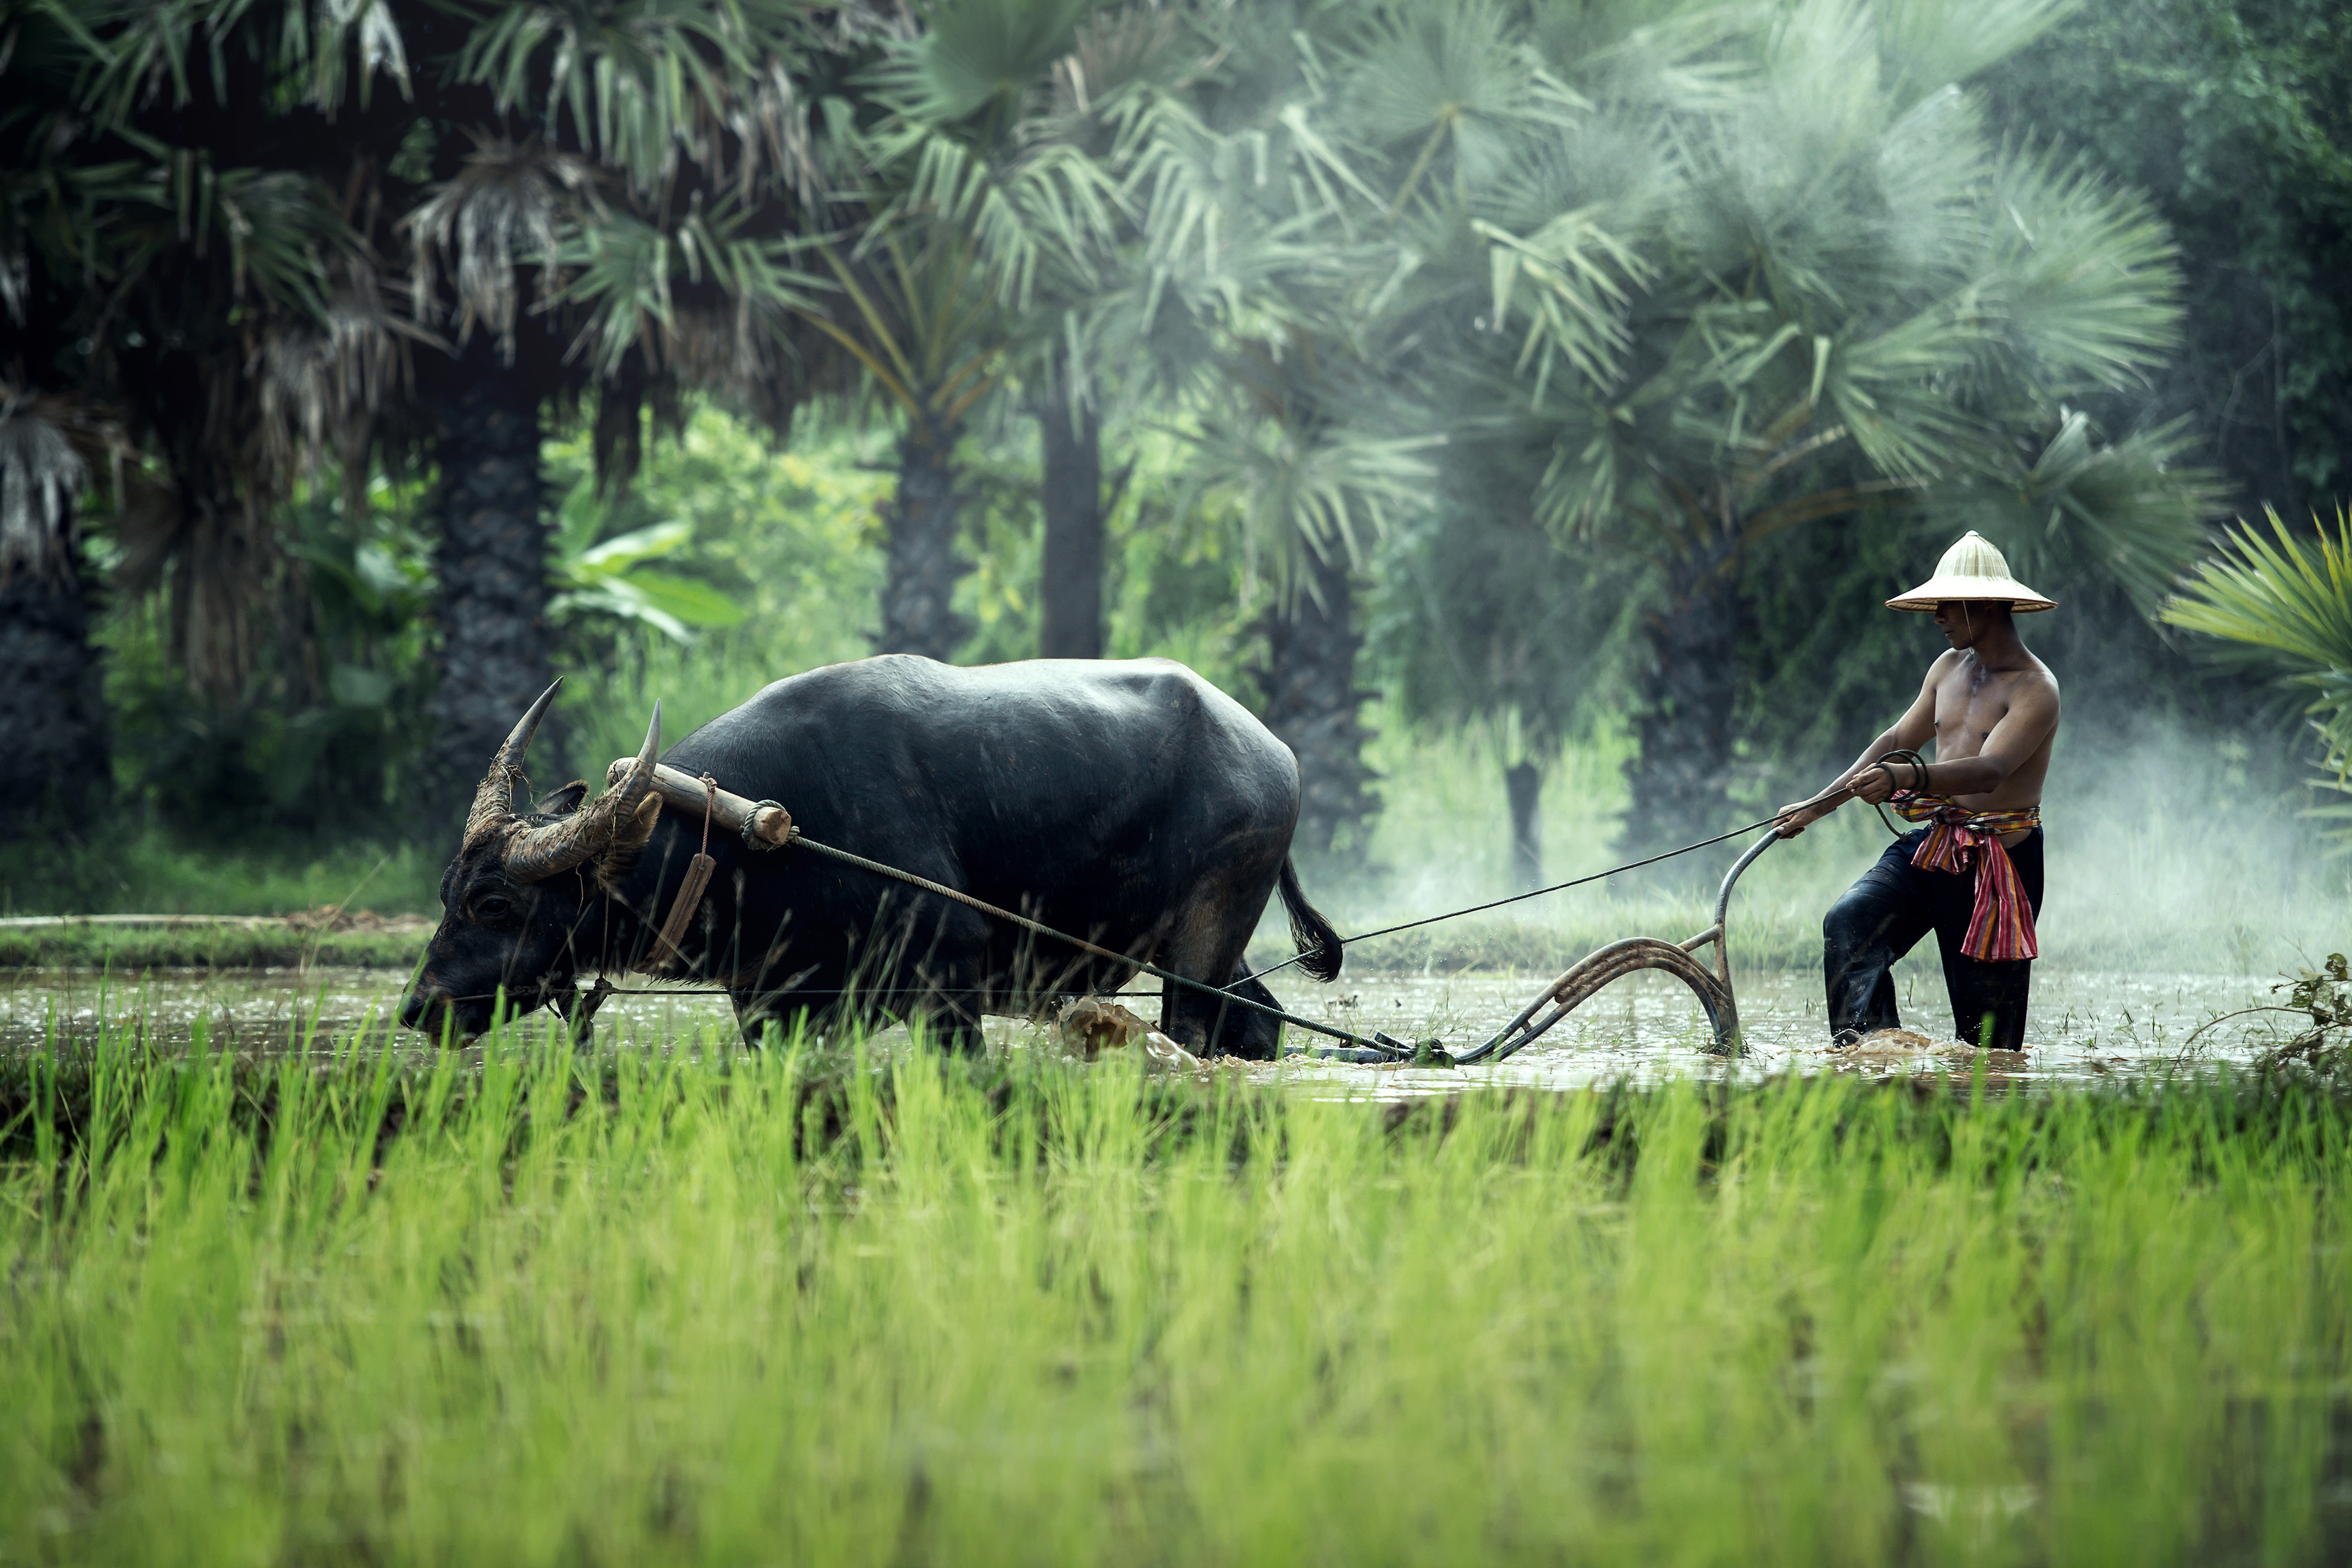 Farmer 4999 plowing rice fields with ploughing cattle 56173